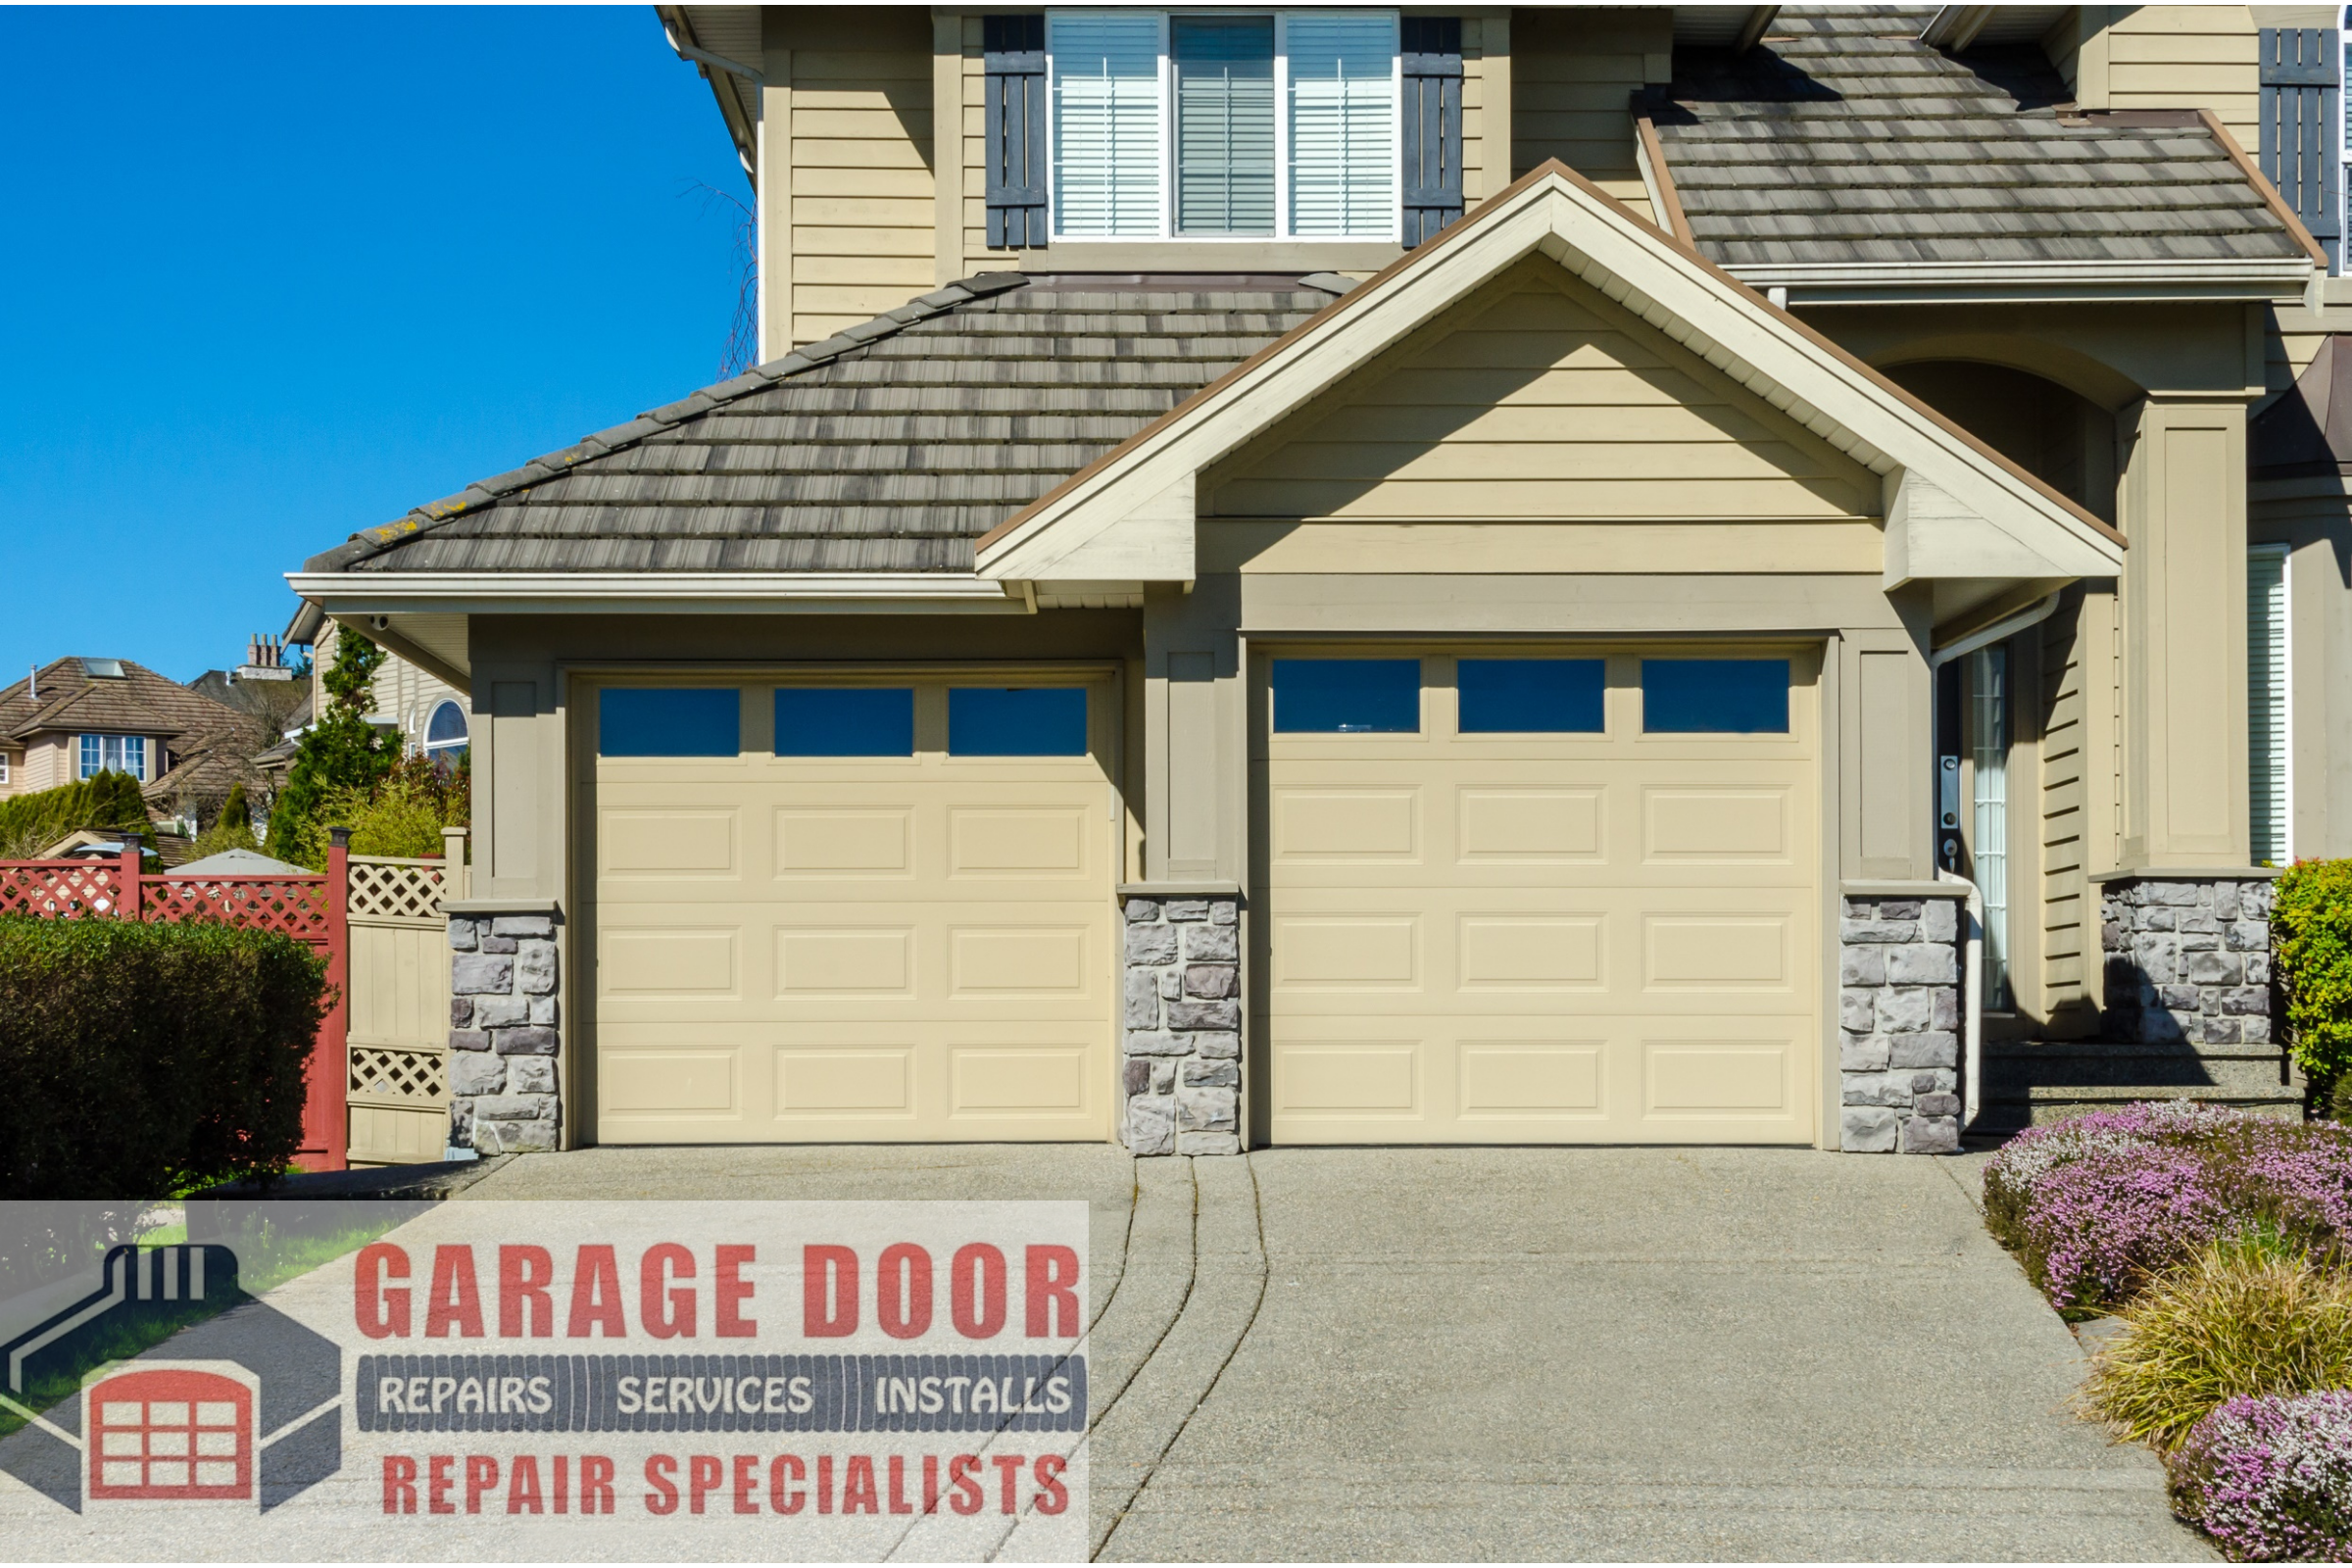 Best Graage Door Company San Antonio